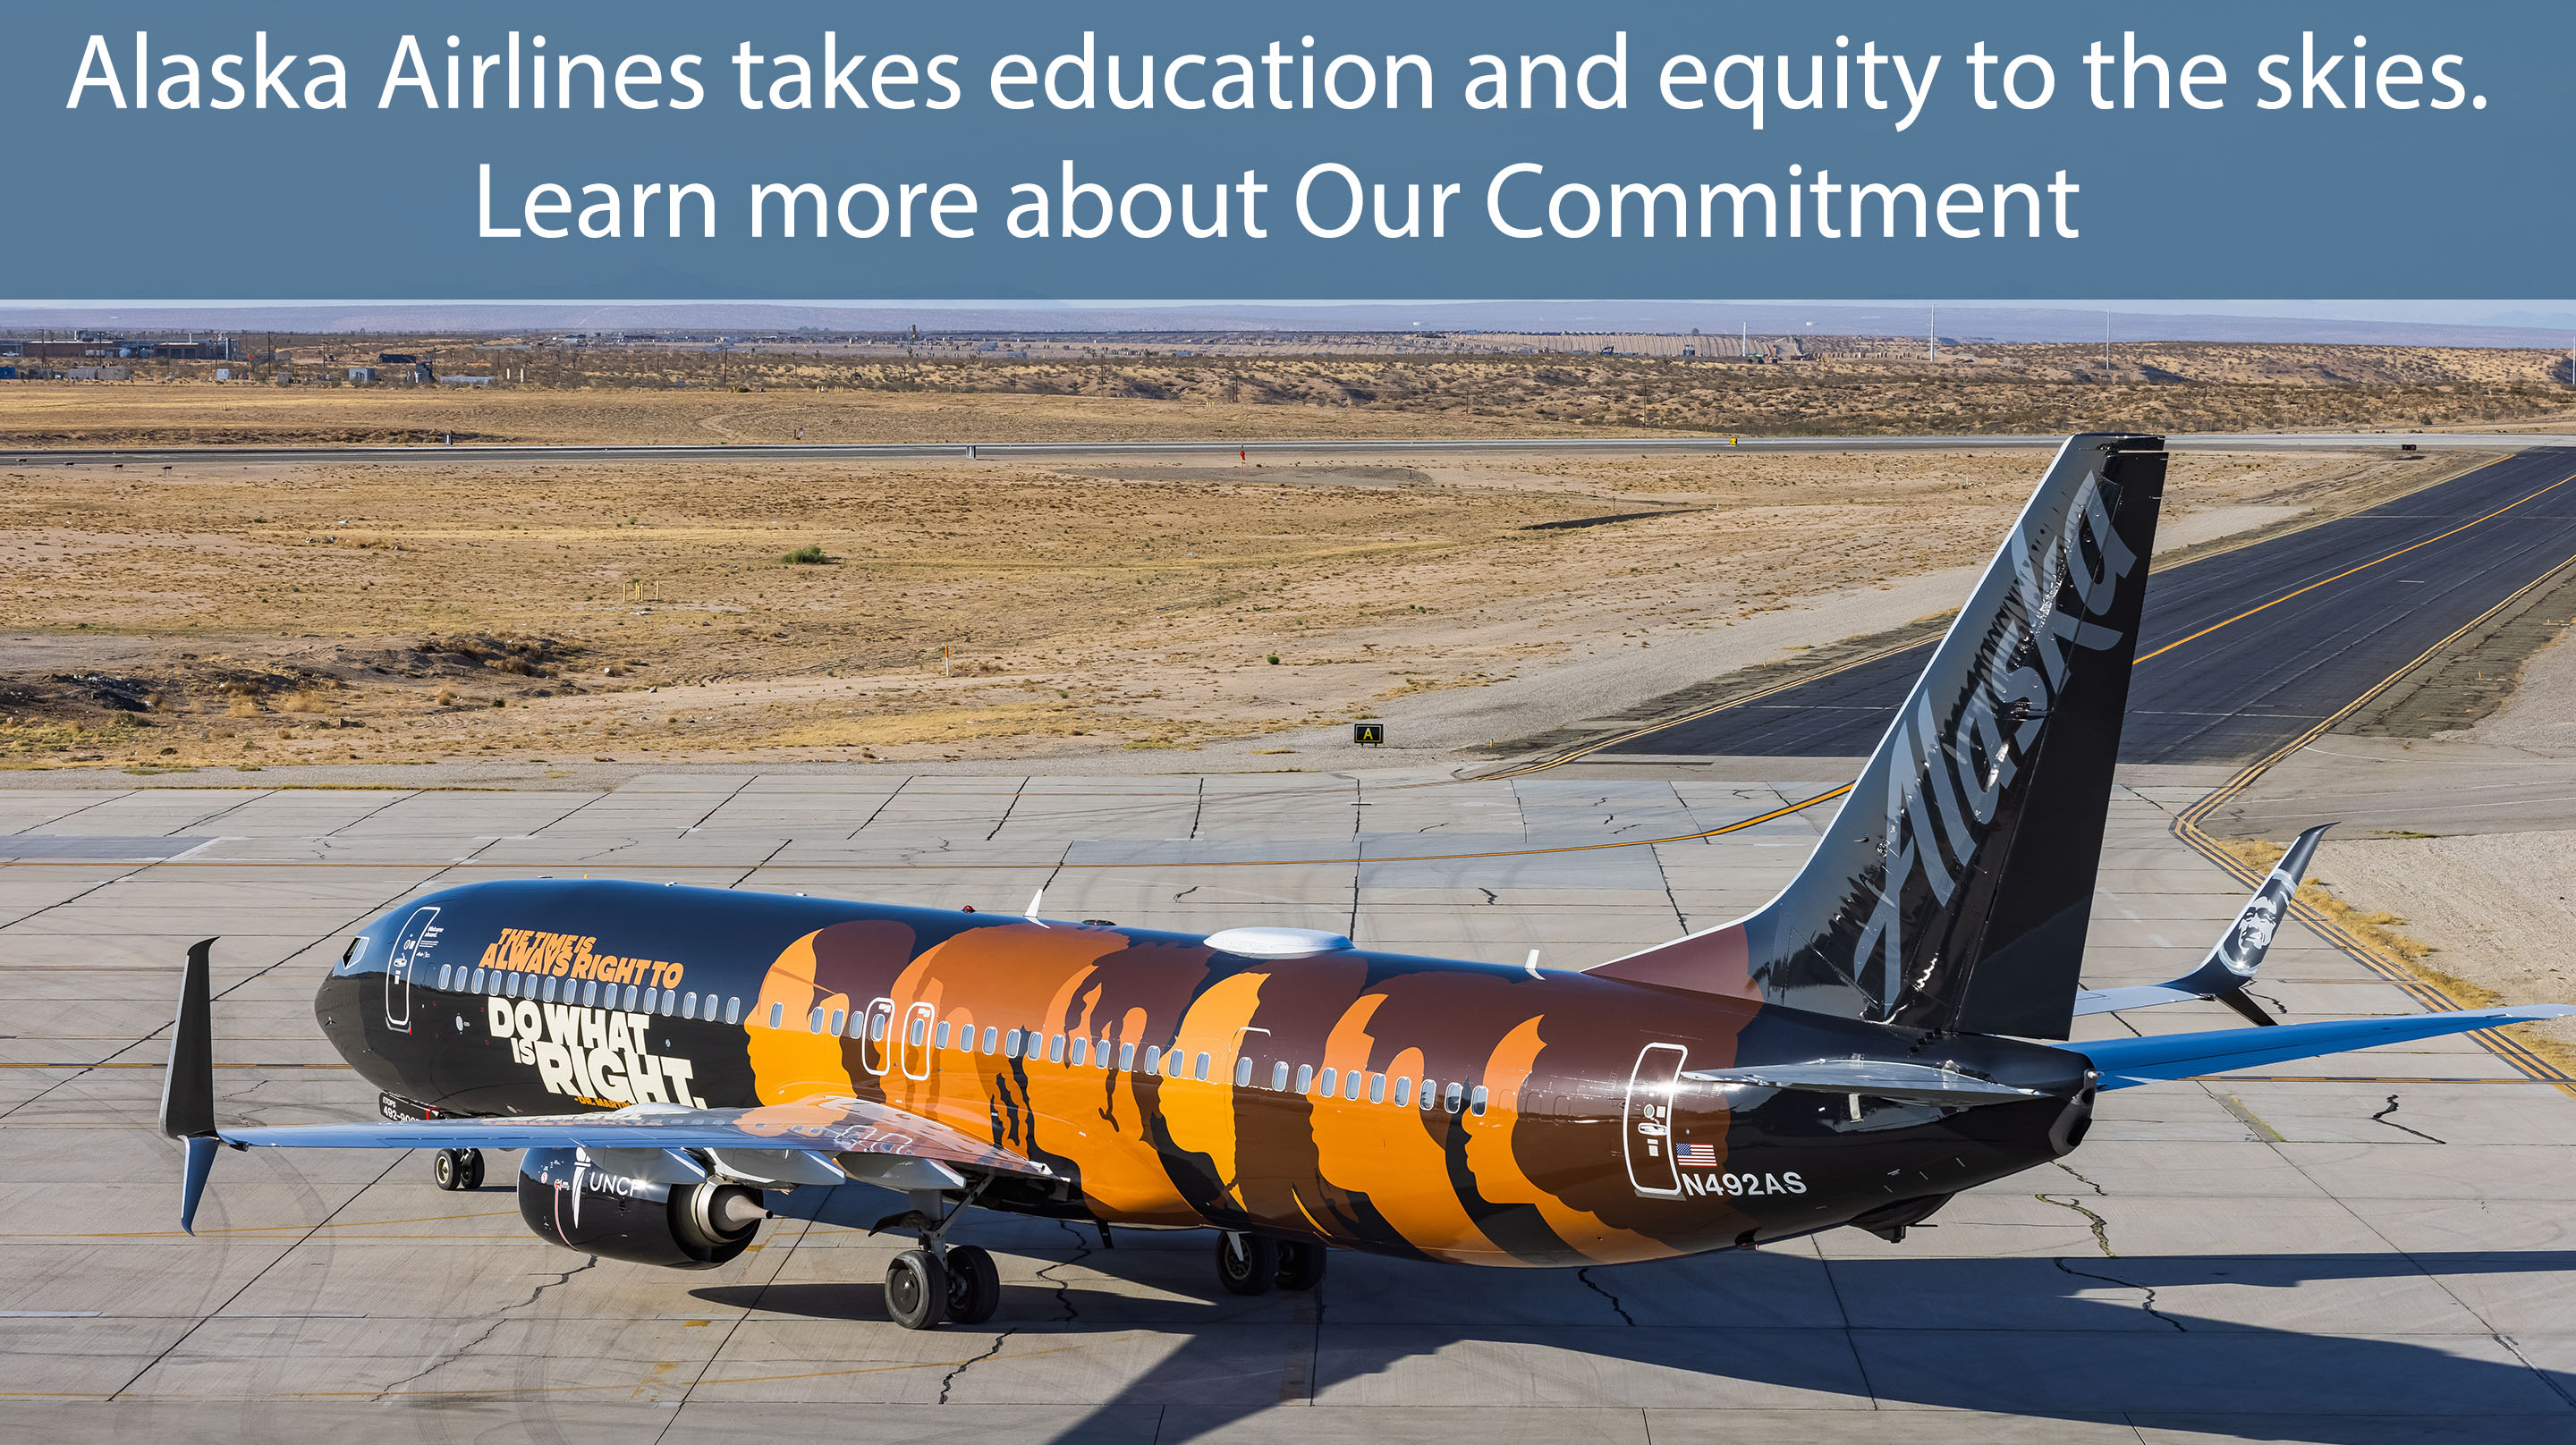 Alaska Airlines takes education and equity to the skies. Learn more about Our Commitment